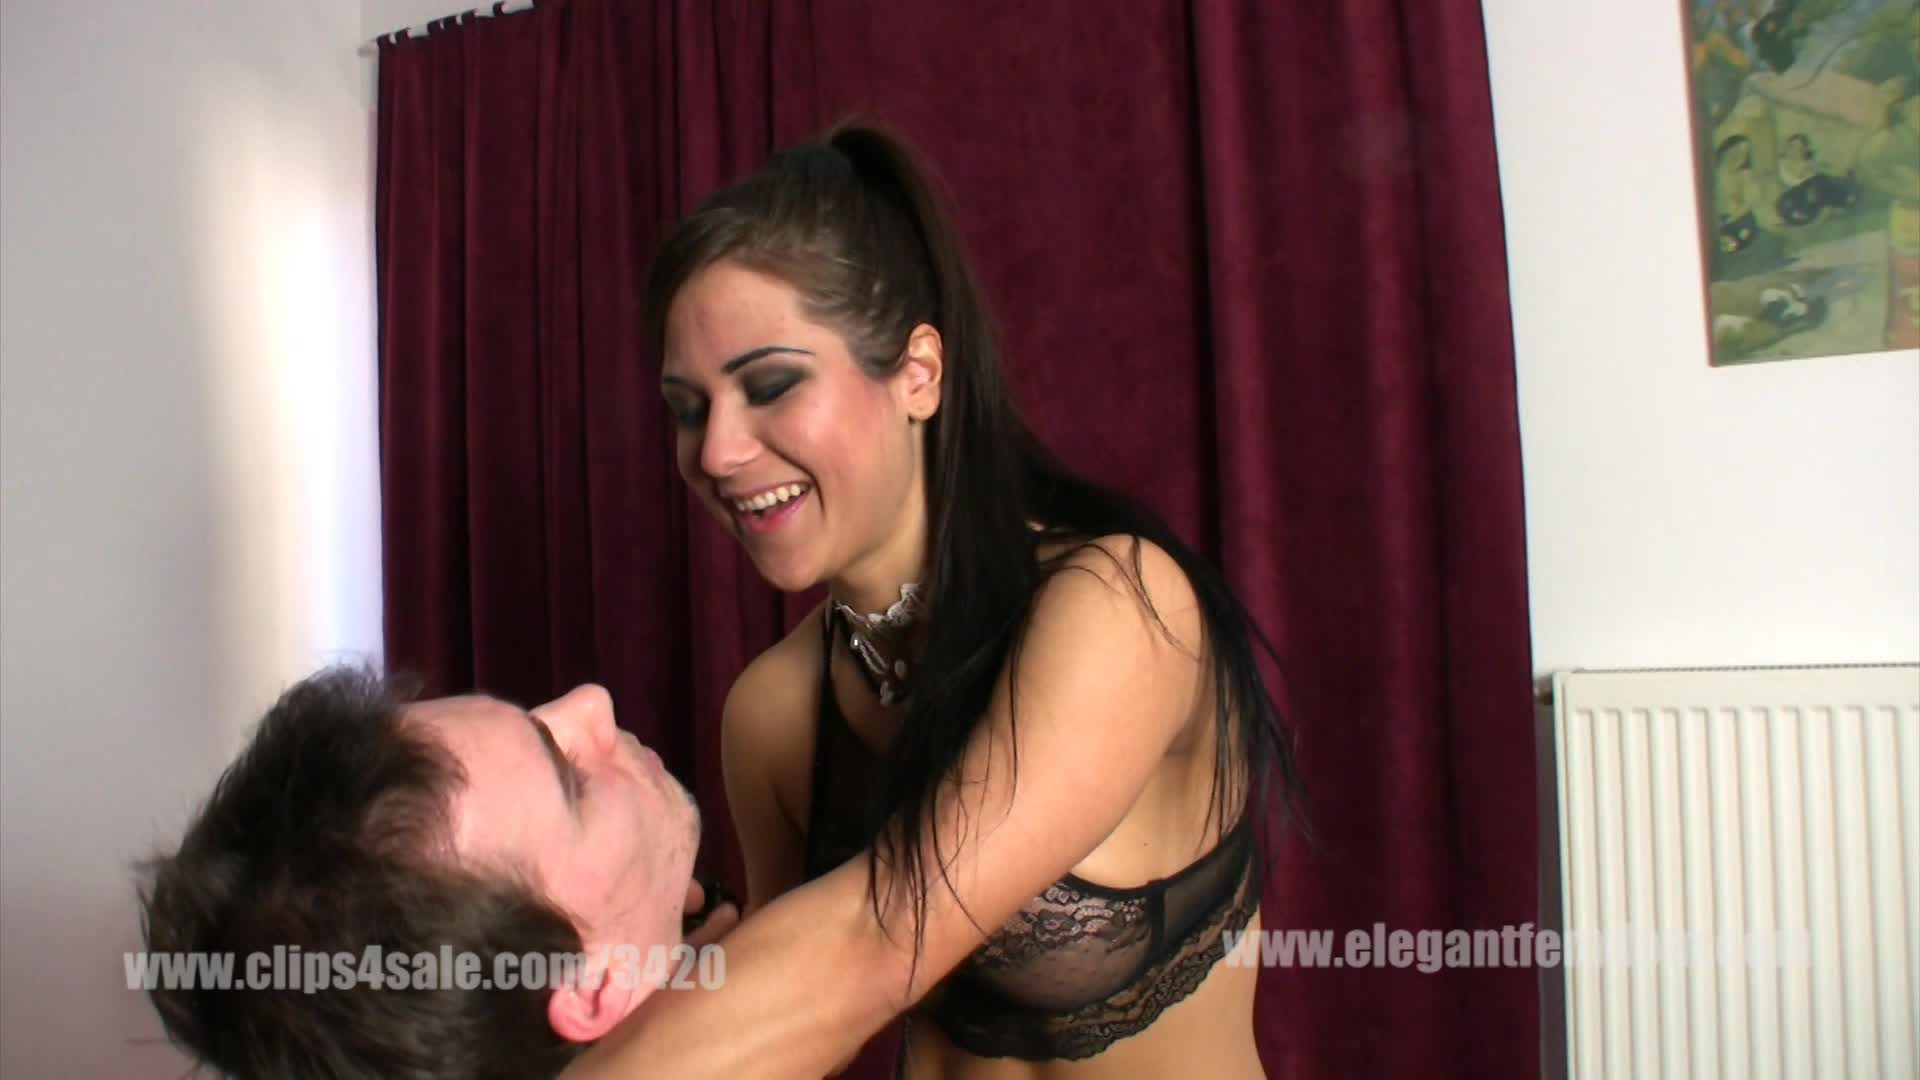 Femdom tease and denial Real life